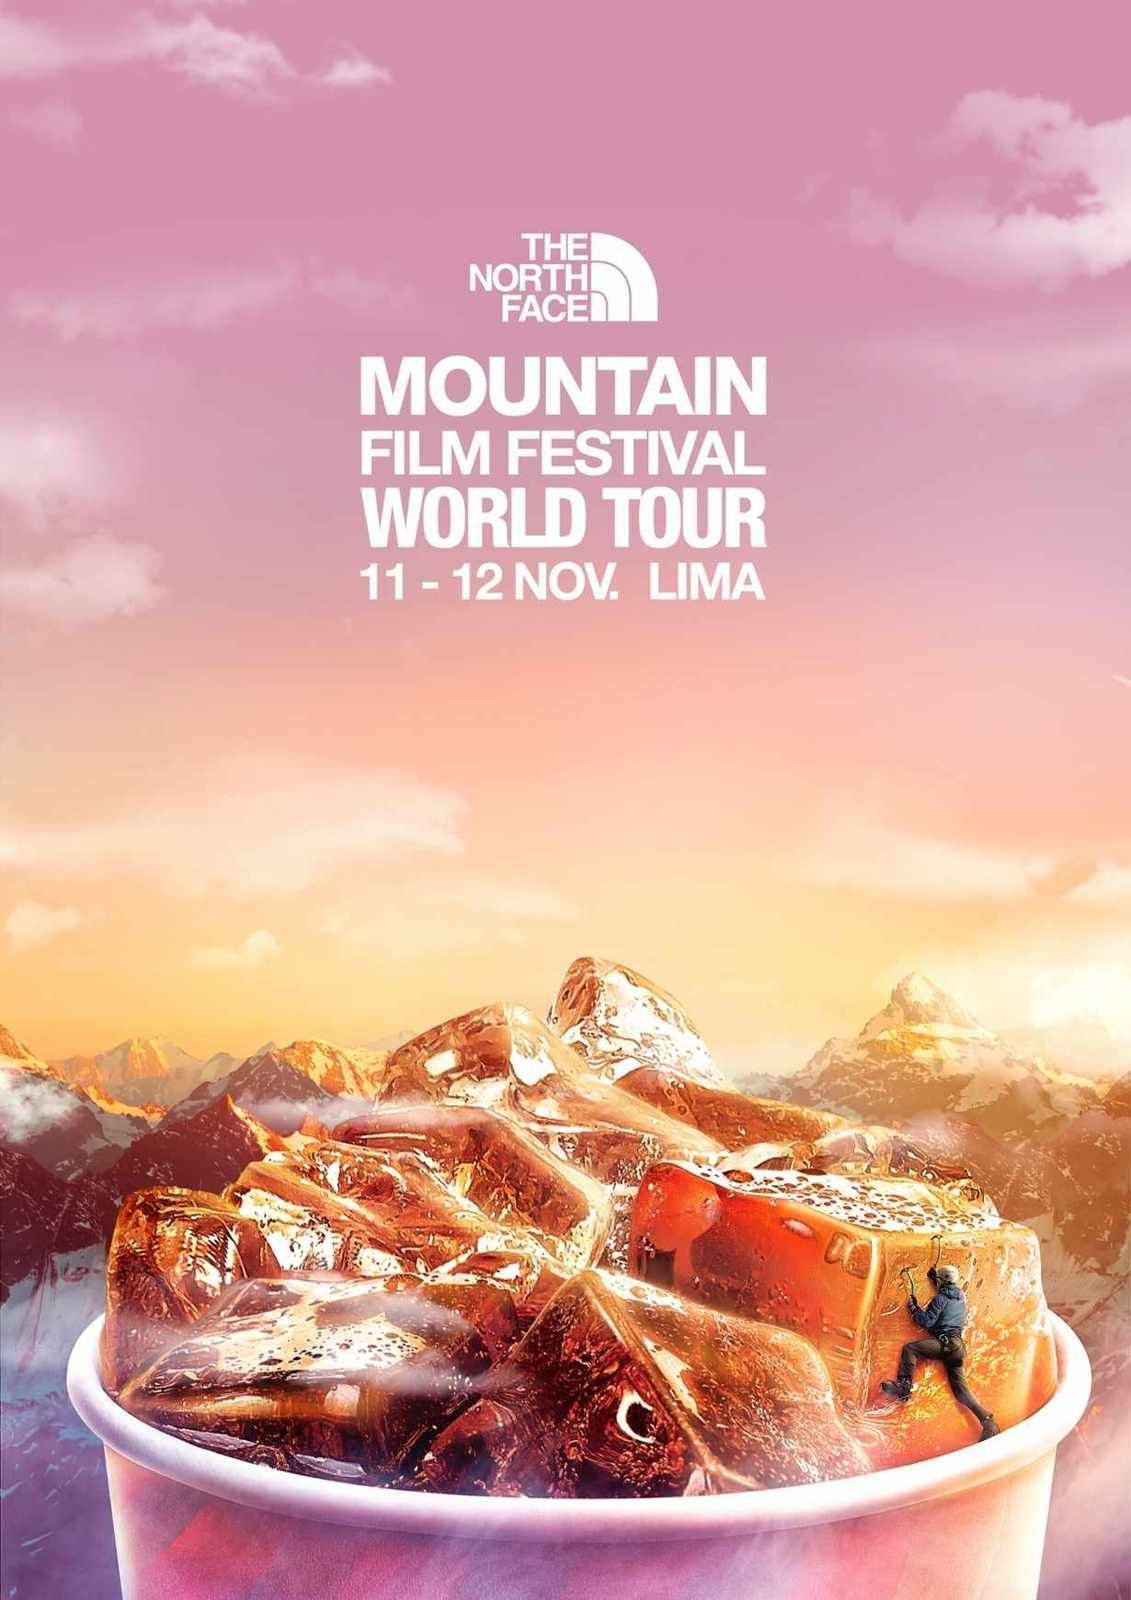 Moutain Film Festival World Tour (The North Face) | Agence : Ingenia, Perou (octobre 2015)